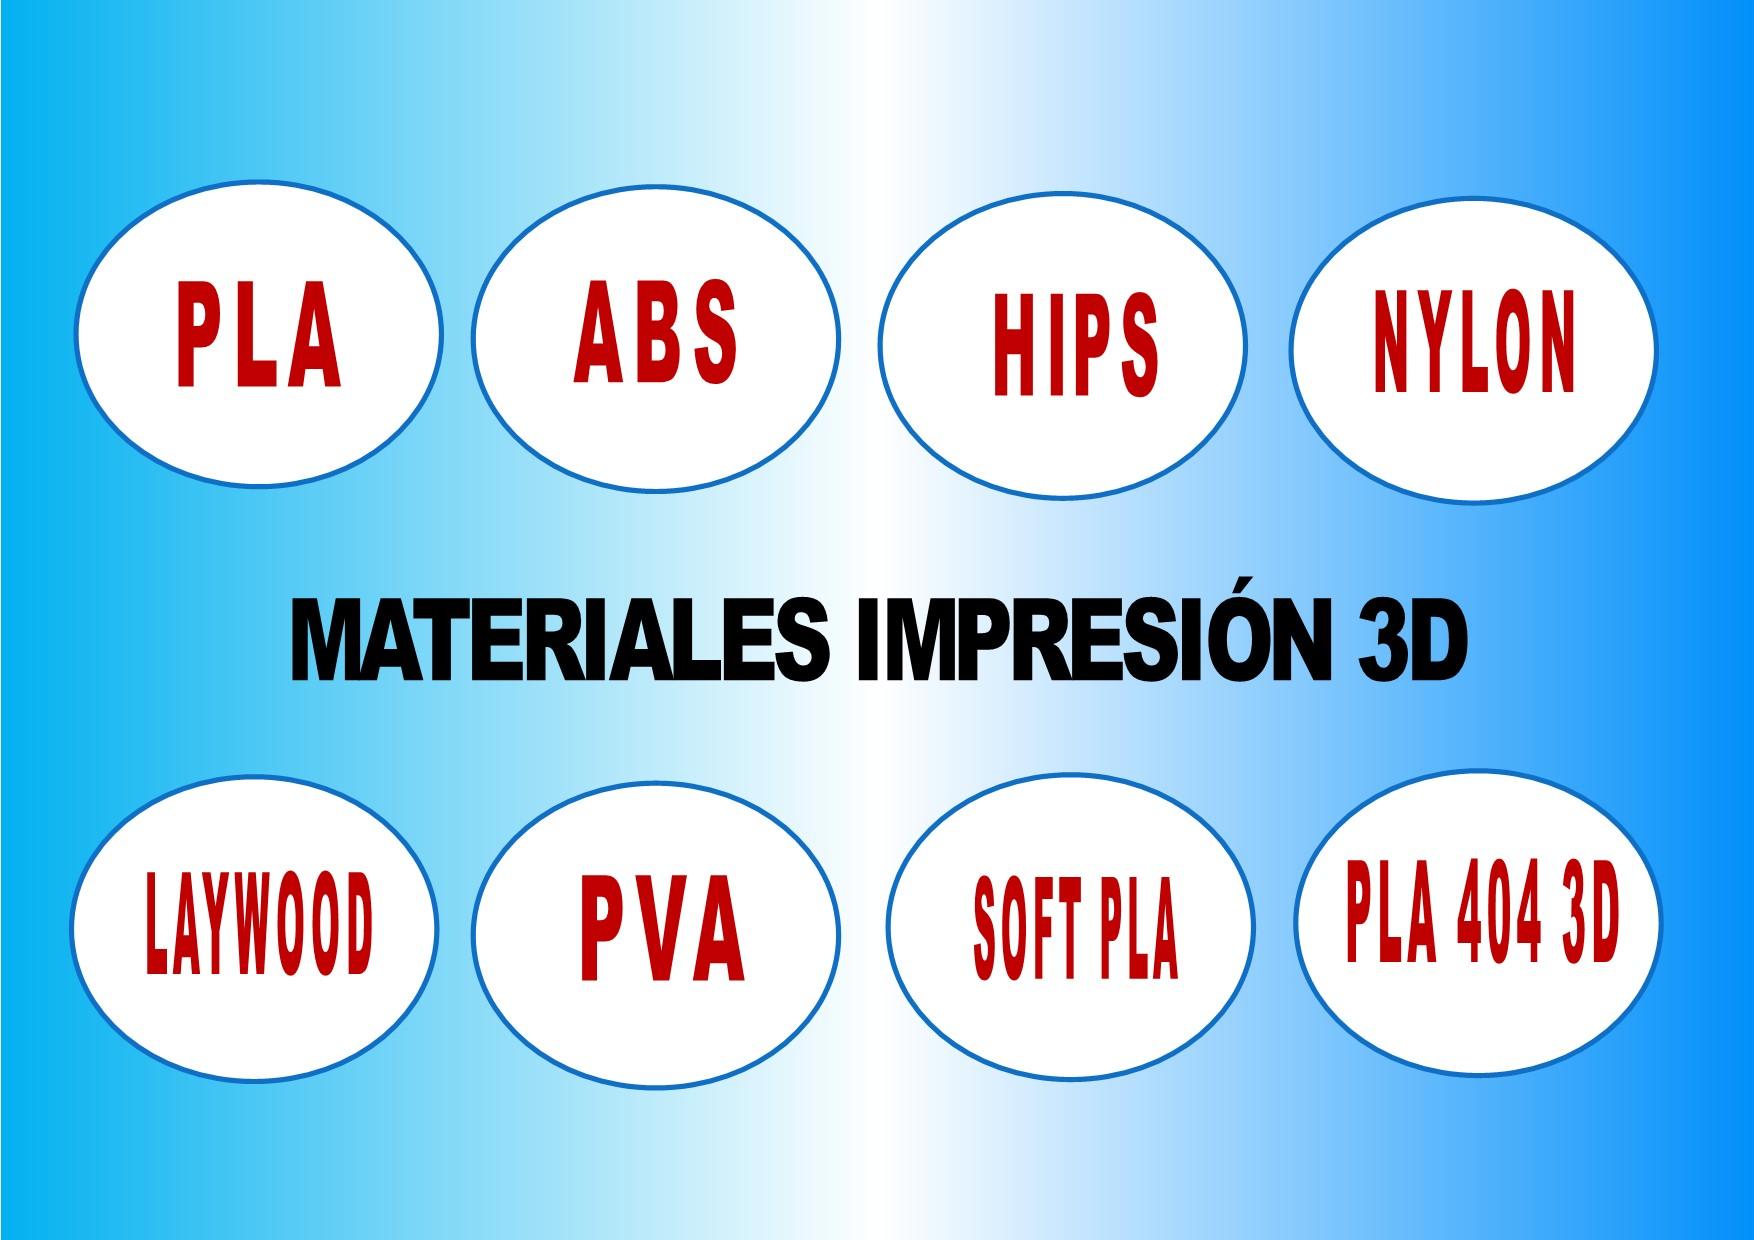 MATERIALES IMPRESION 3D